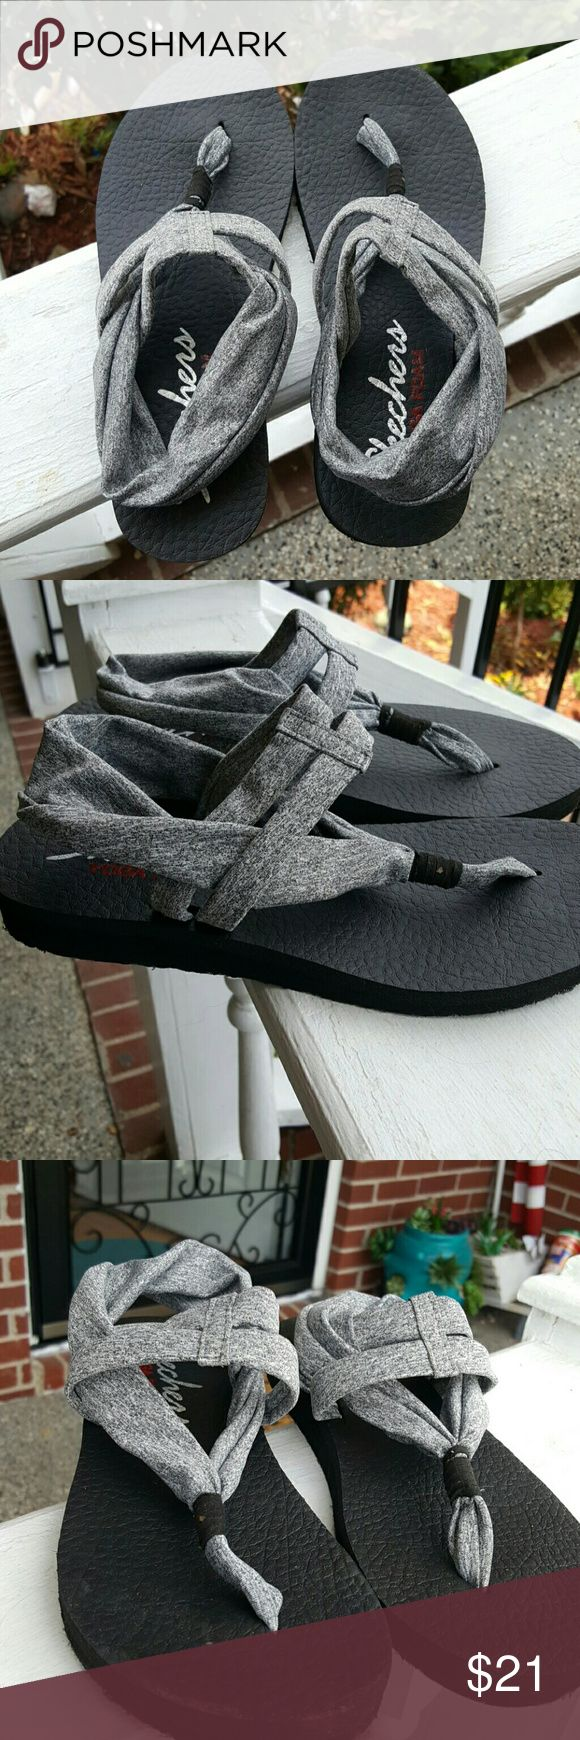 Sketchers yoga sandals sz 8 Like new, very comfortable! Sized 8. sketchers  Shoes Sandals